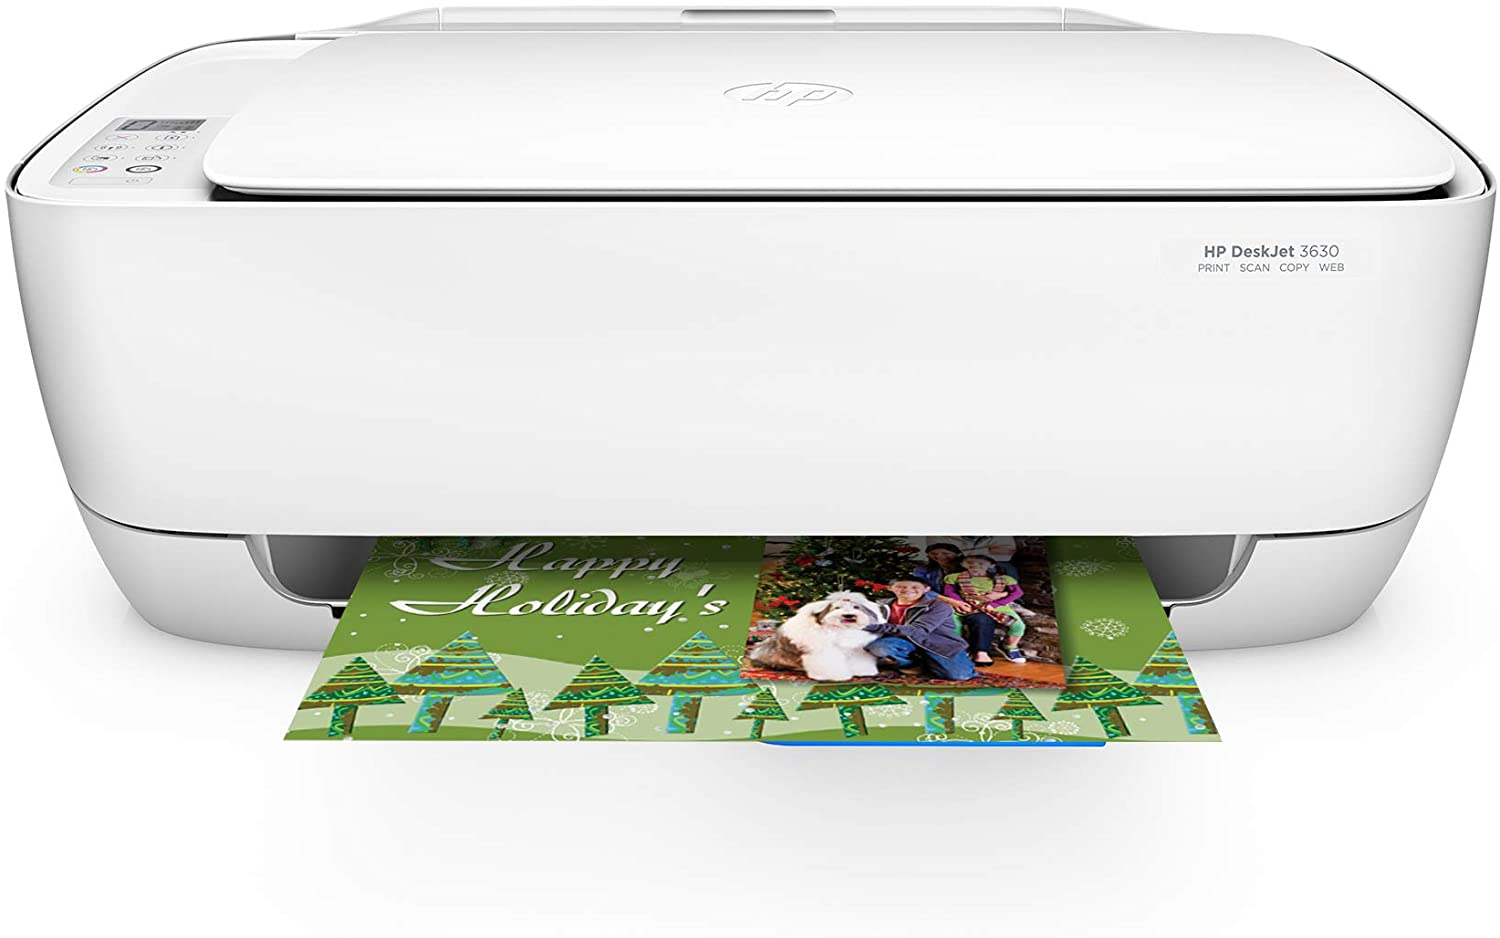 HP Deskjet 3630 Wireless All-in-One Printer - Affordable Printers